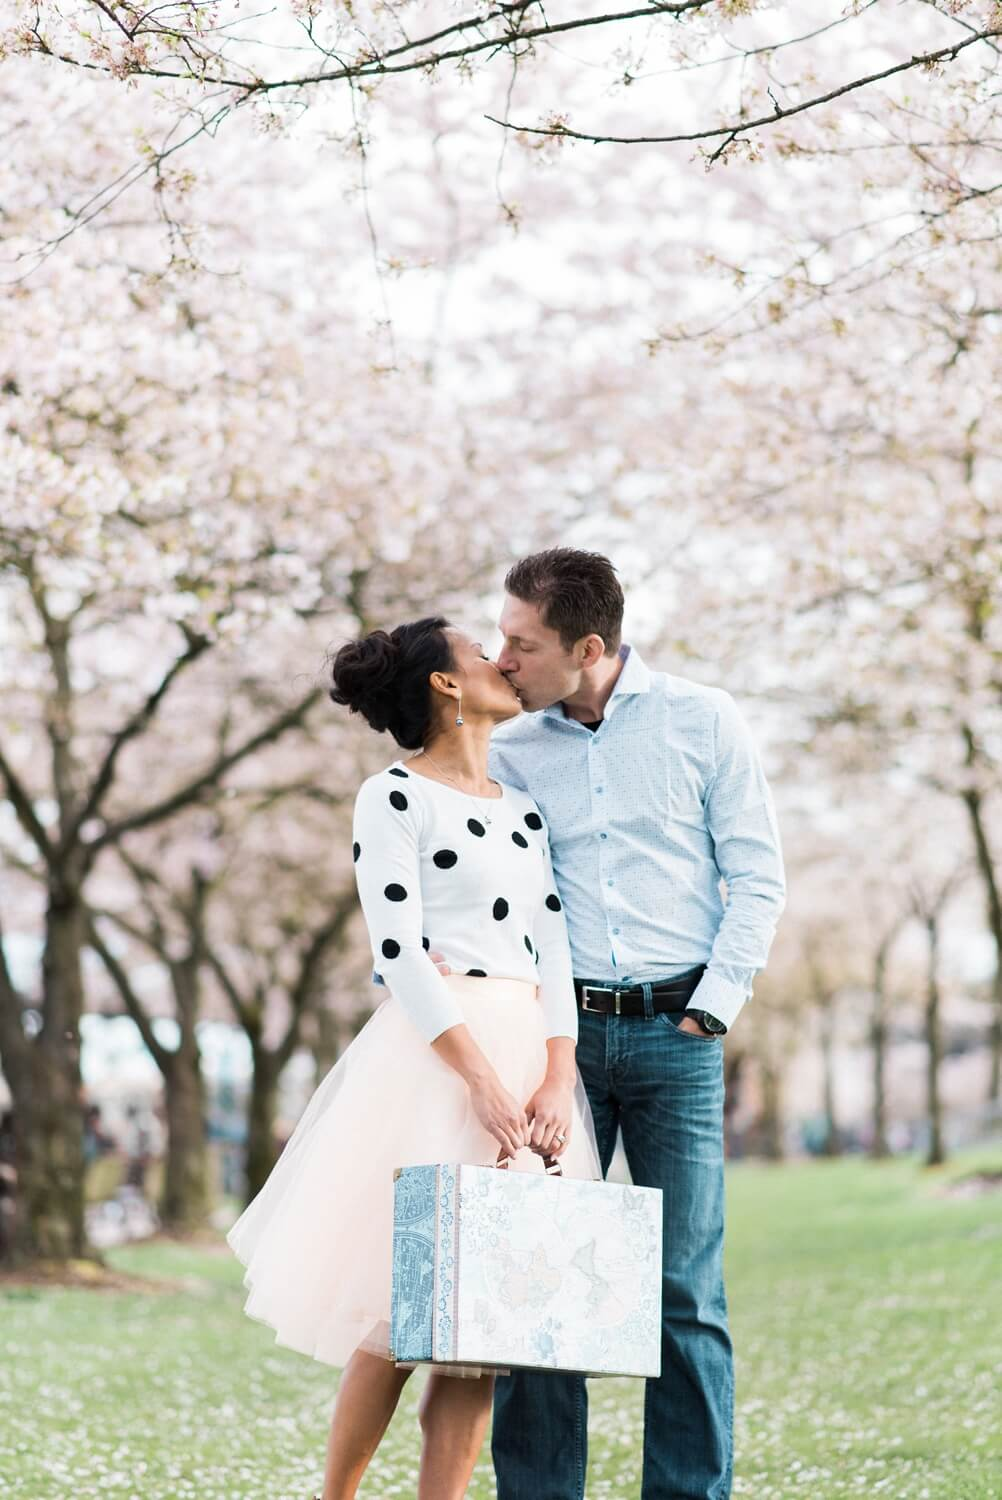 portland-waterfront-engagement-cherry-blossom-cathedral-park-sokhorn-jay-110_cr.jpg